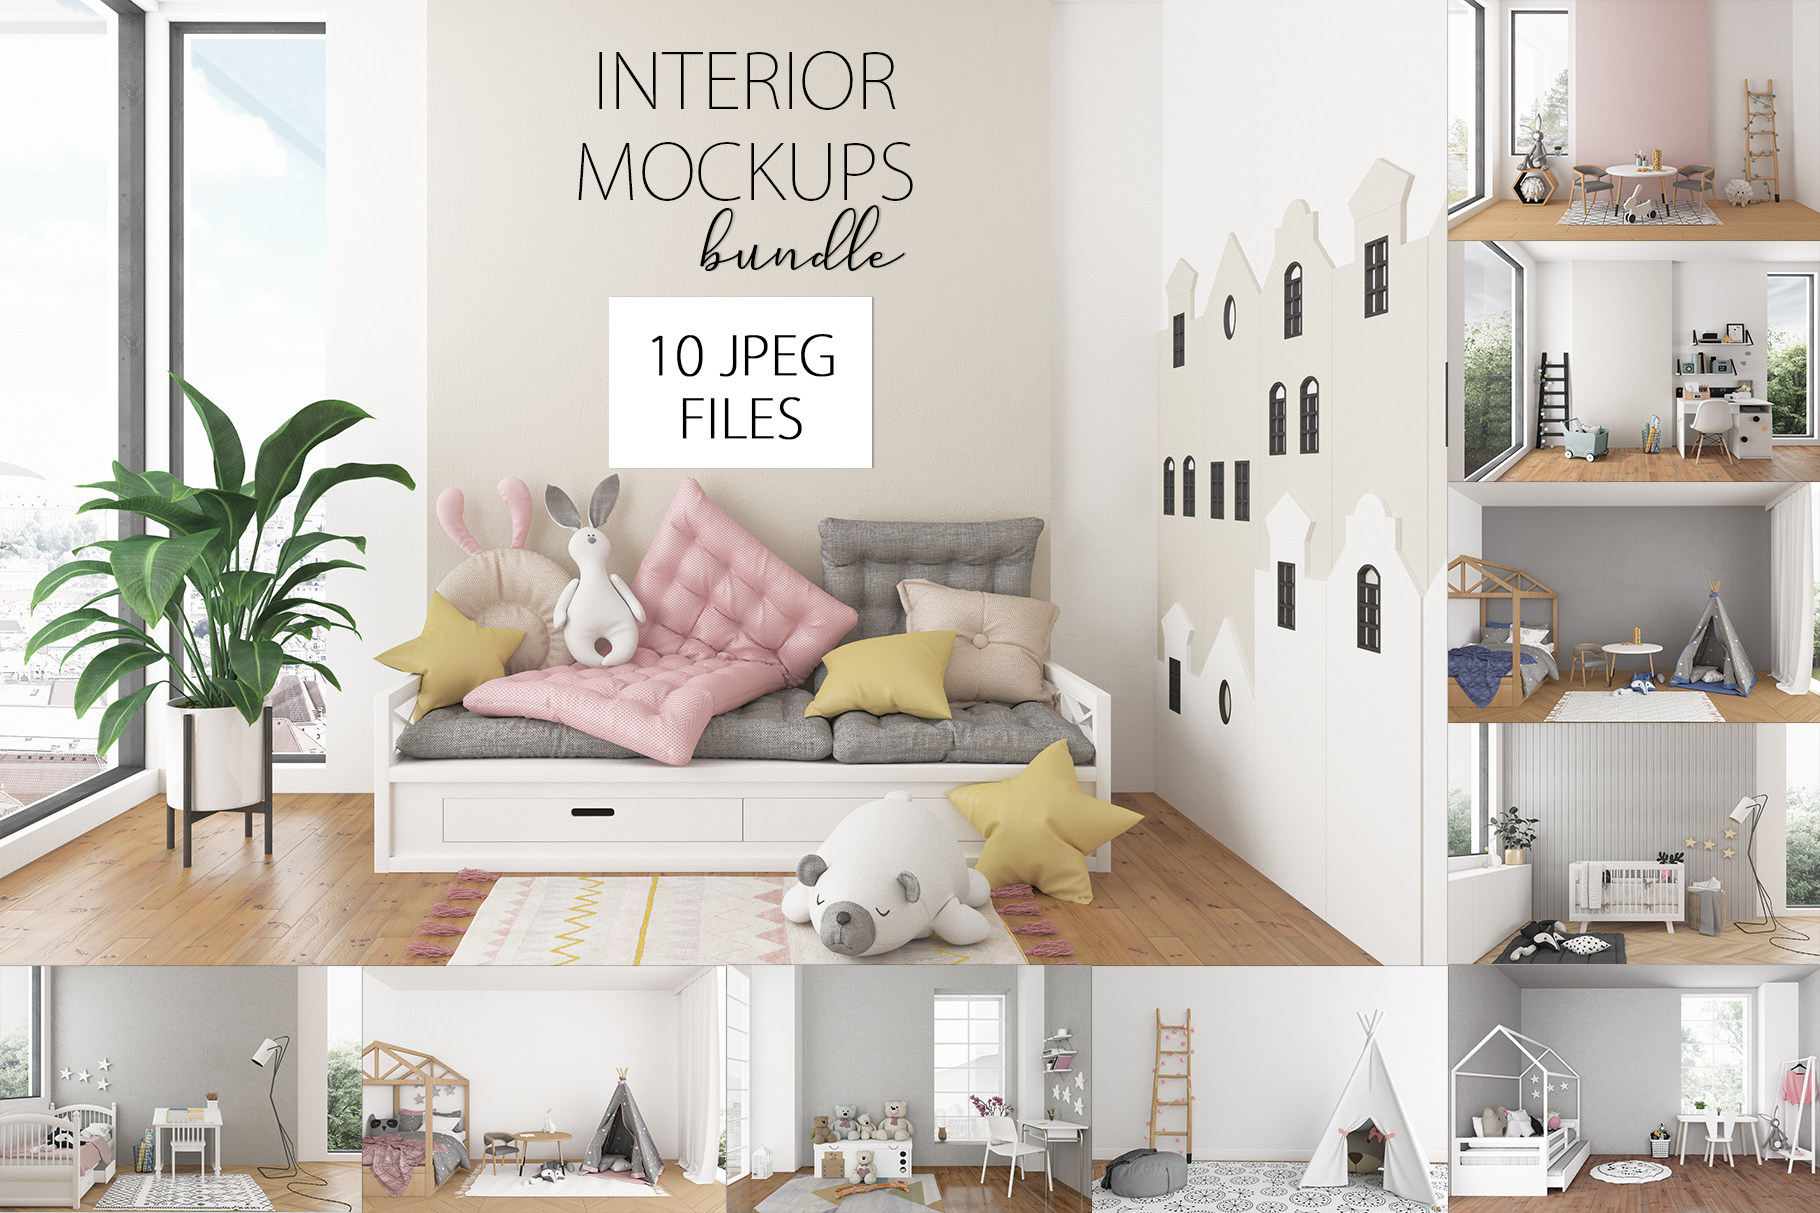 Nursery interior bundle - 10 images 60 off example image 1